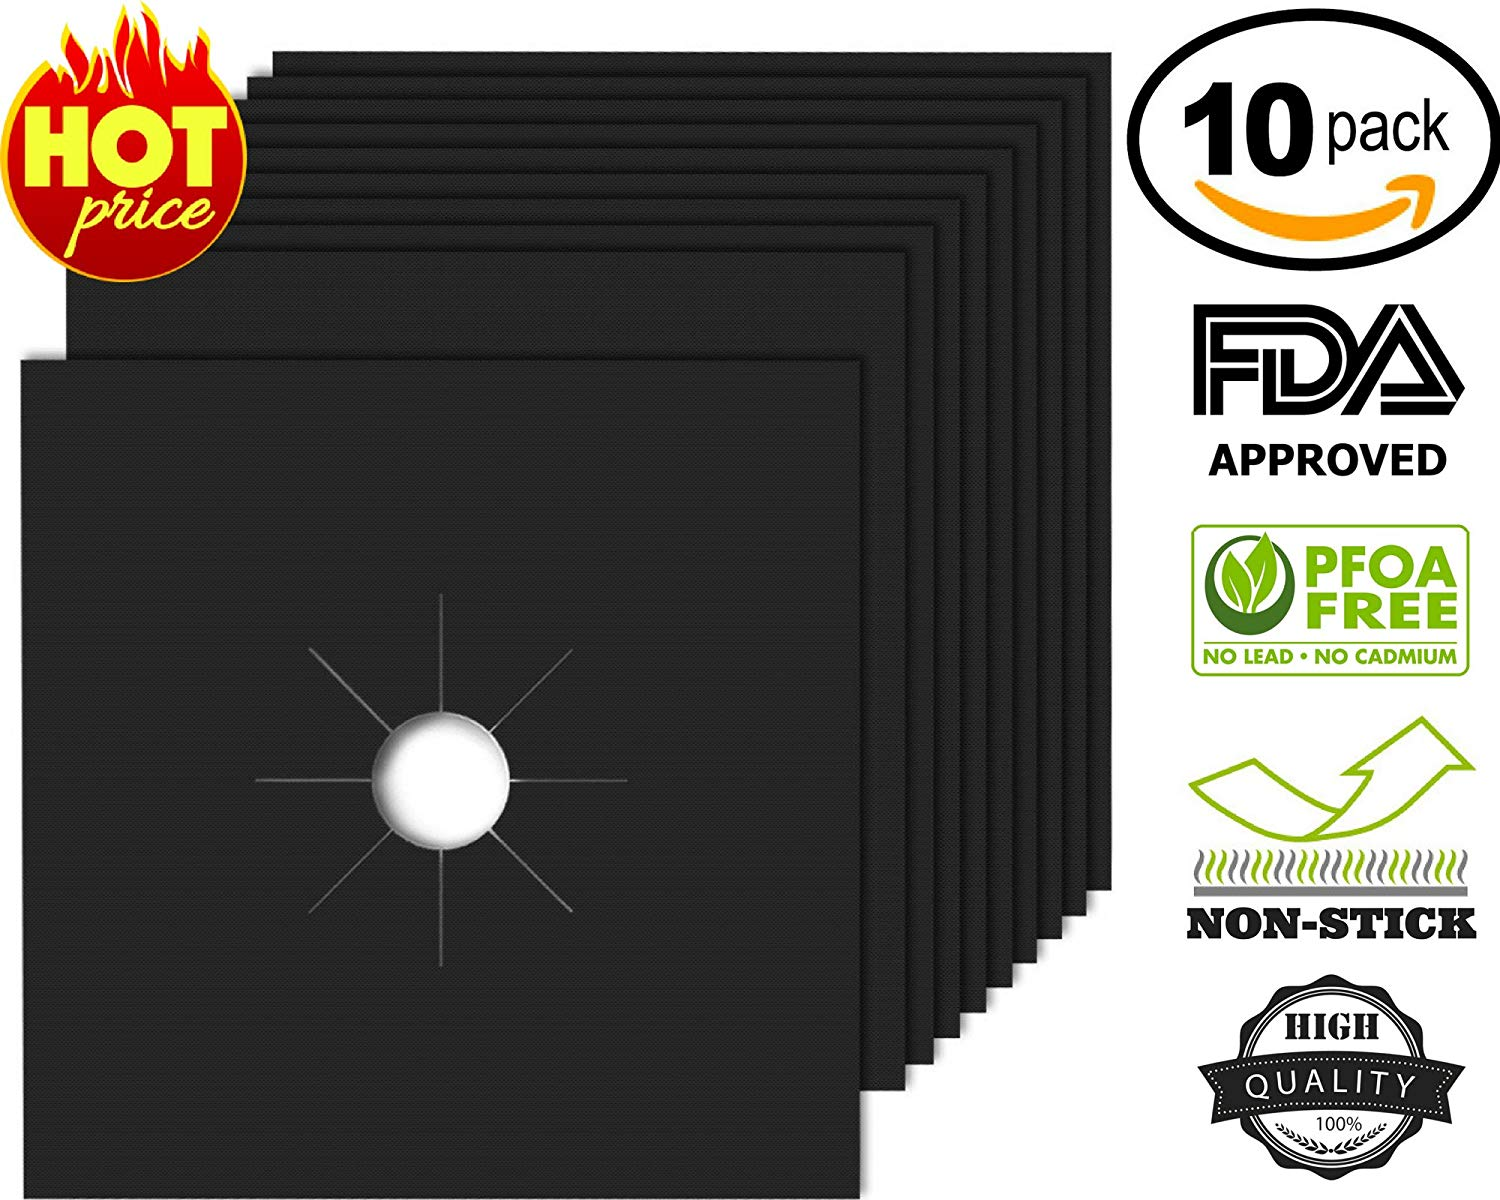 Gas Stove Burner Covers 10 PACK, 100% AUTHENTIC REAL NON STICK PROPERTIES, Gas Range Protectors,Double Thickness 0.2mm Reusable Stovetop Burner Liners, Dishwasher Safe, Easy to Clean, Size 10.6X10.6